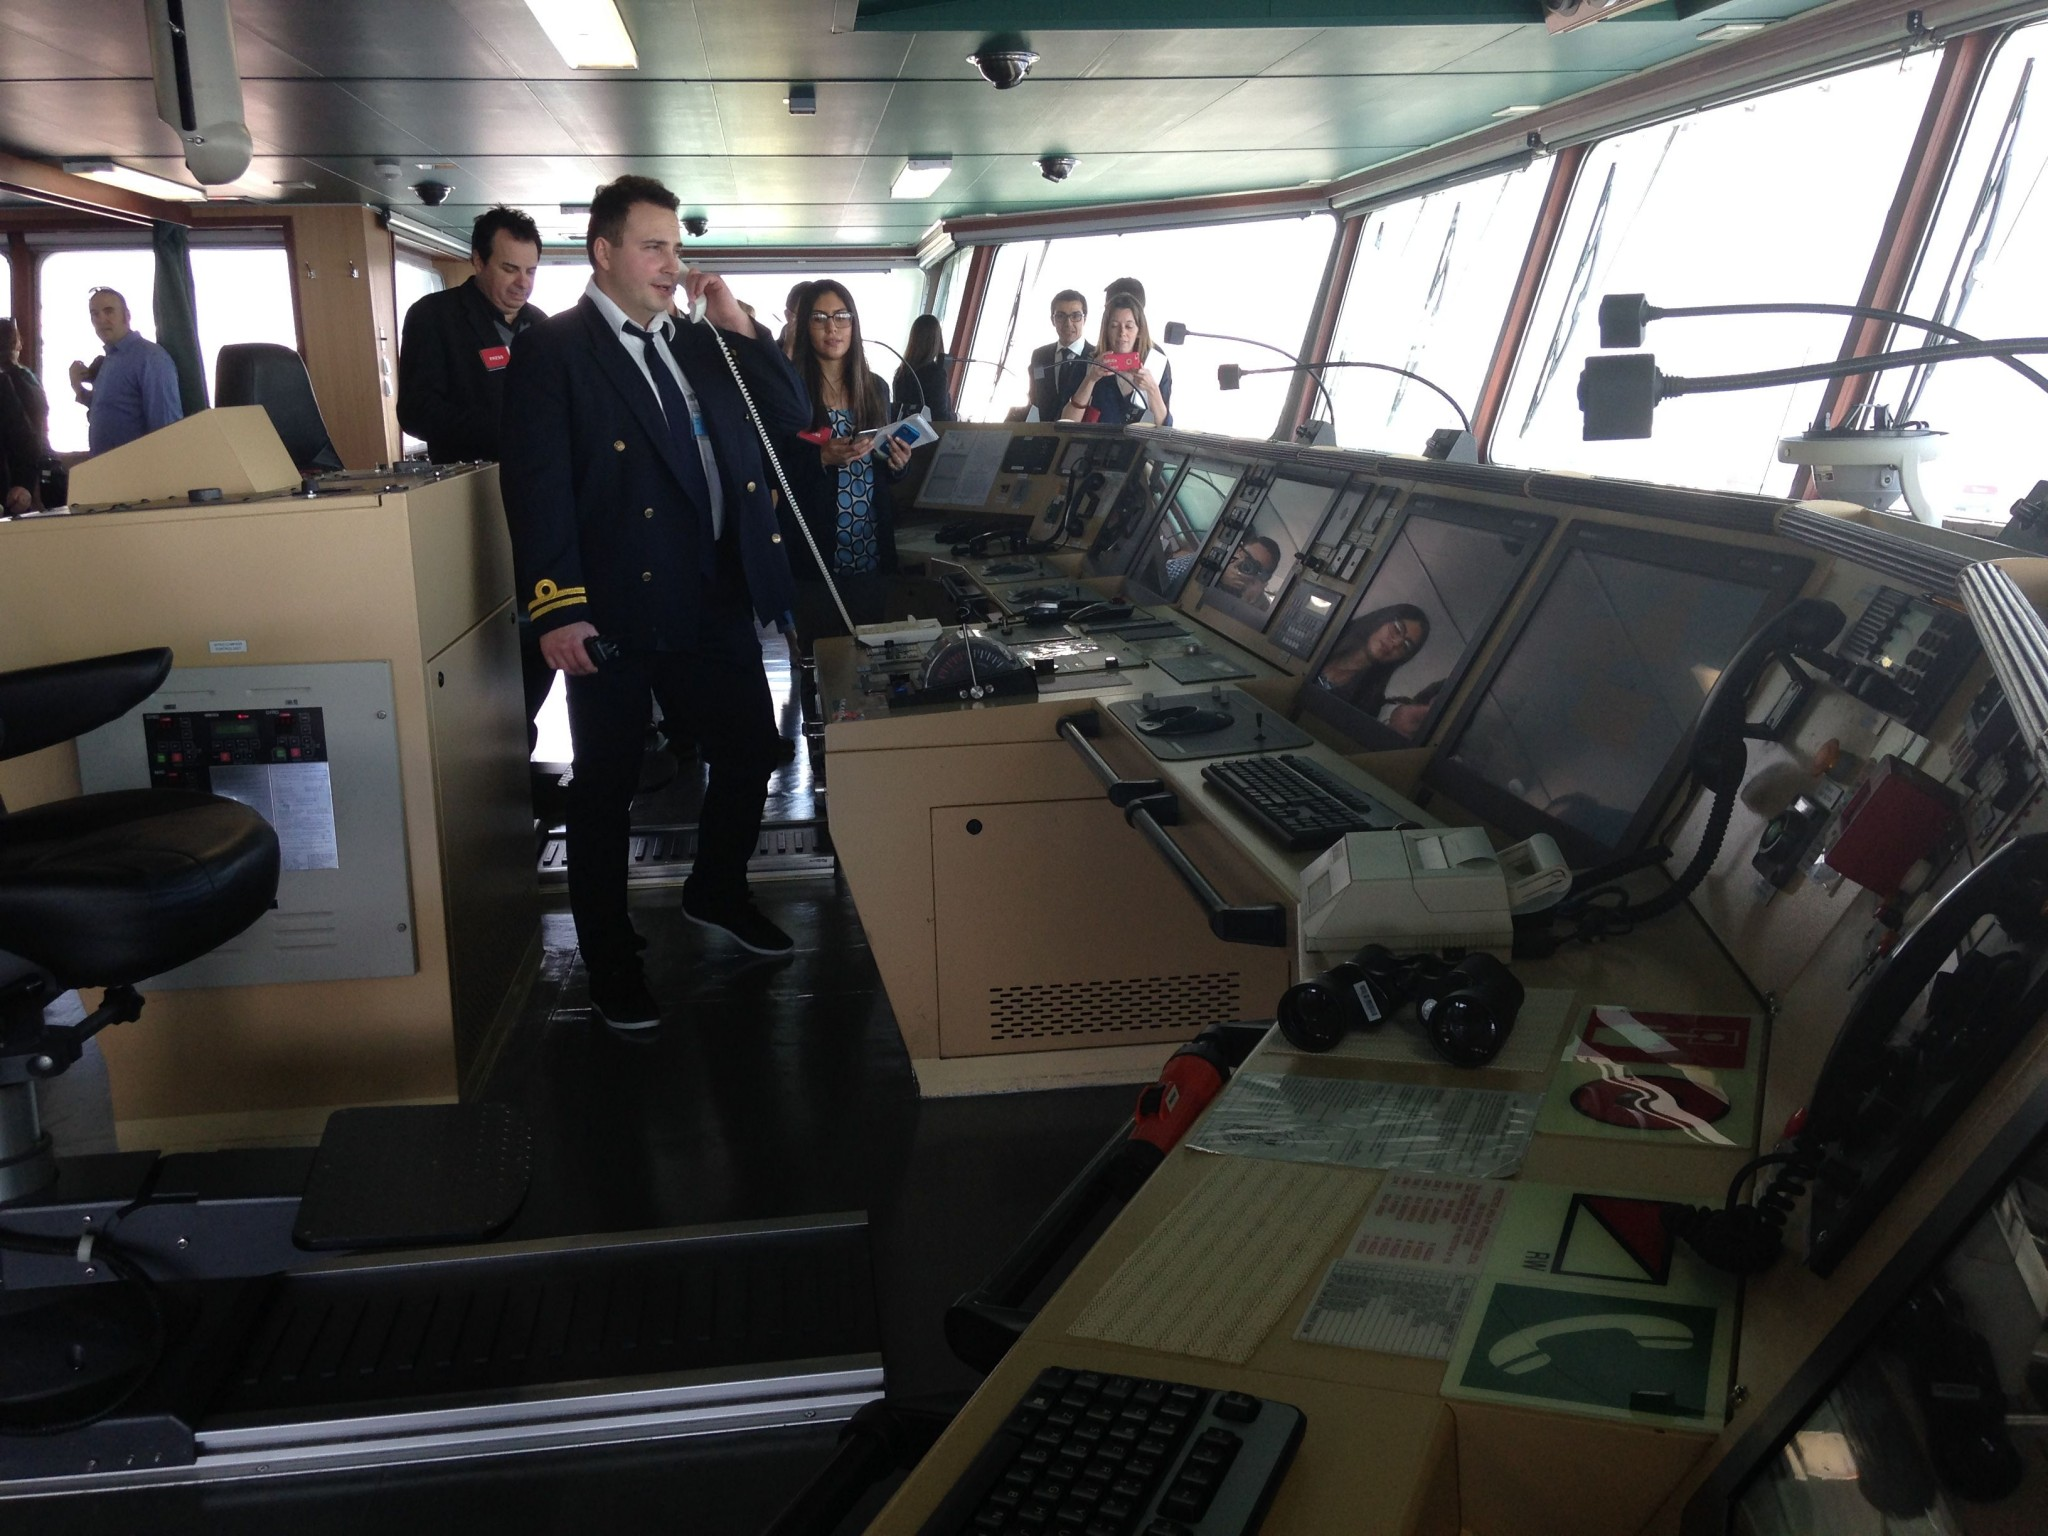 A tour of the deck of the CMA CGM Benjamin Franklin. Photo by Frances Anderton.